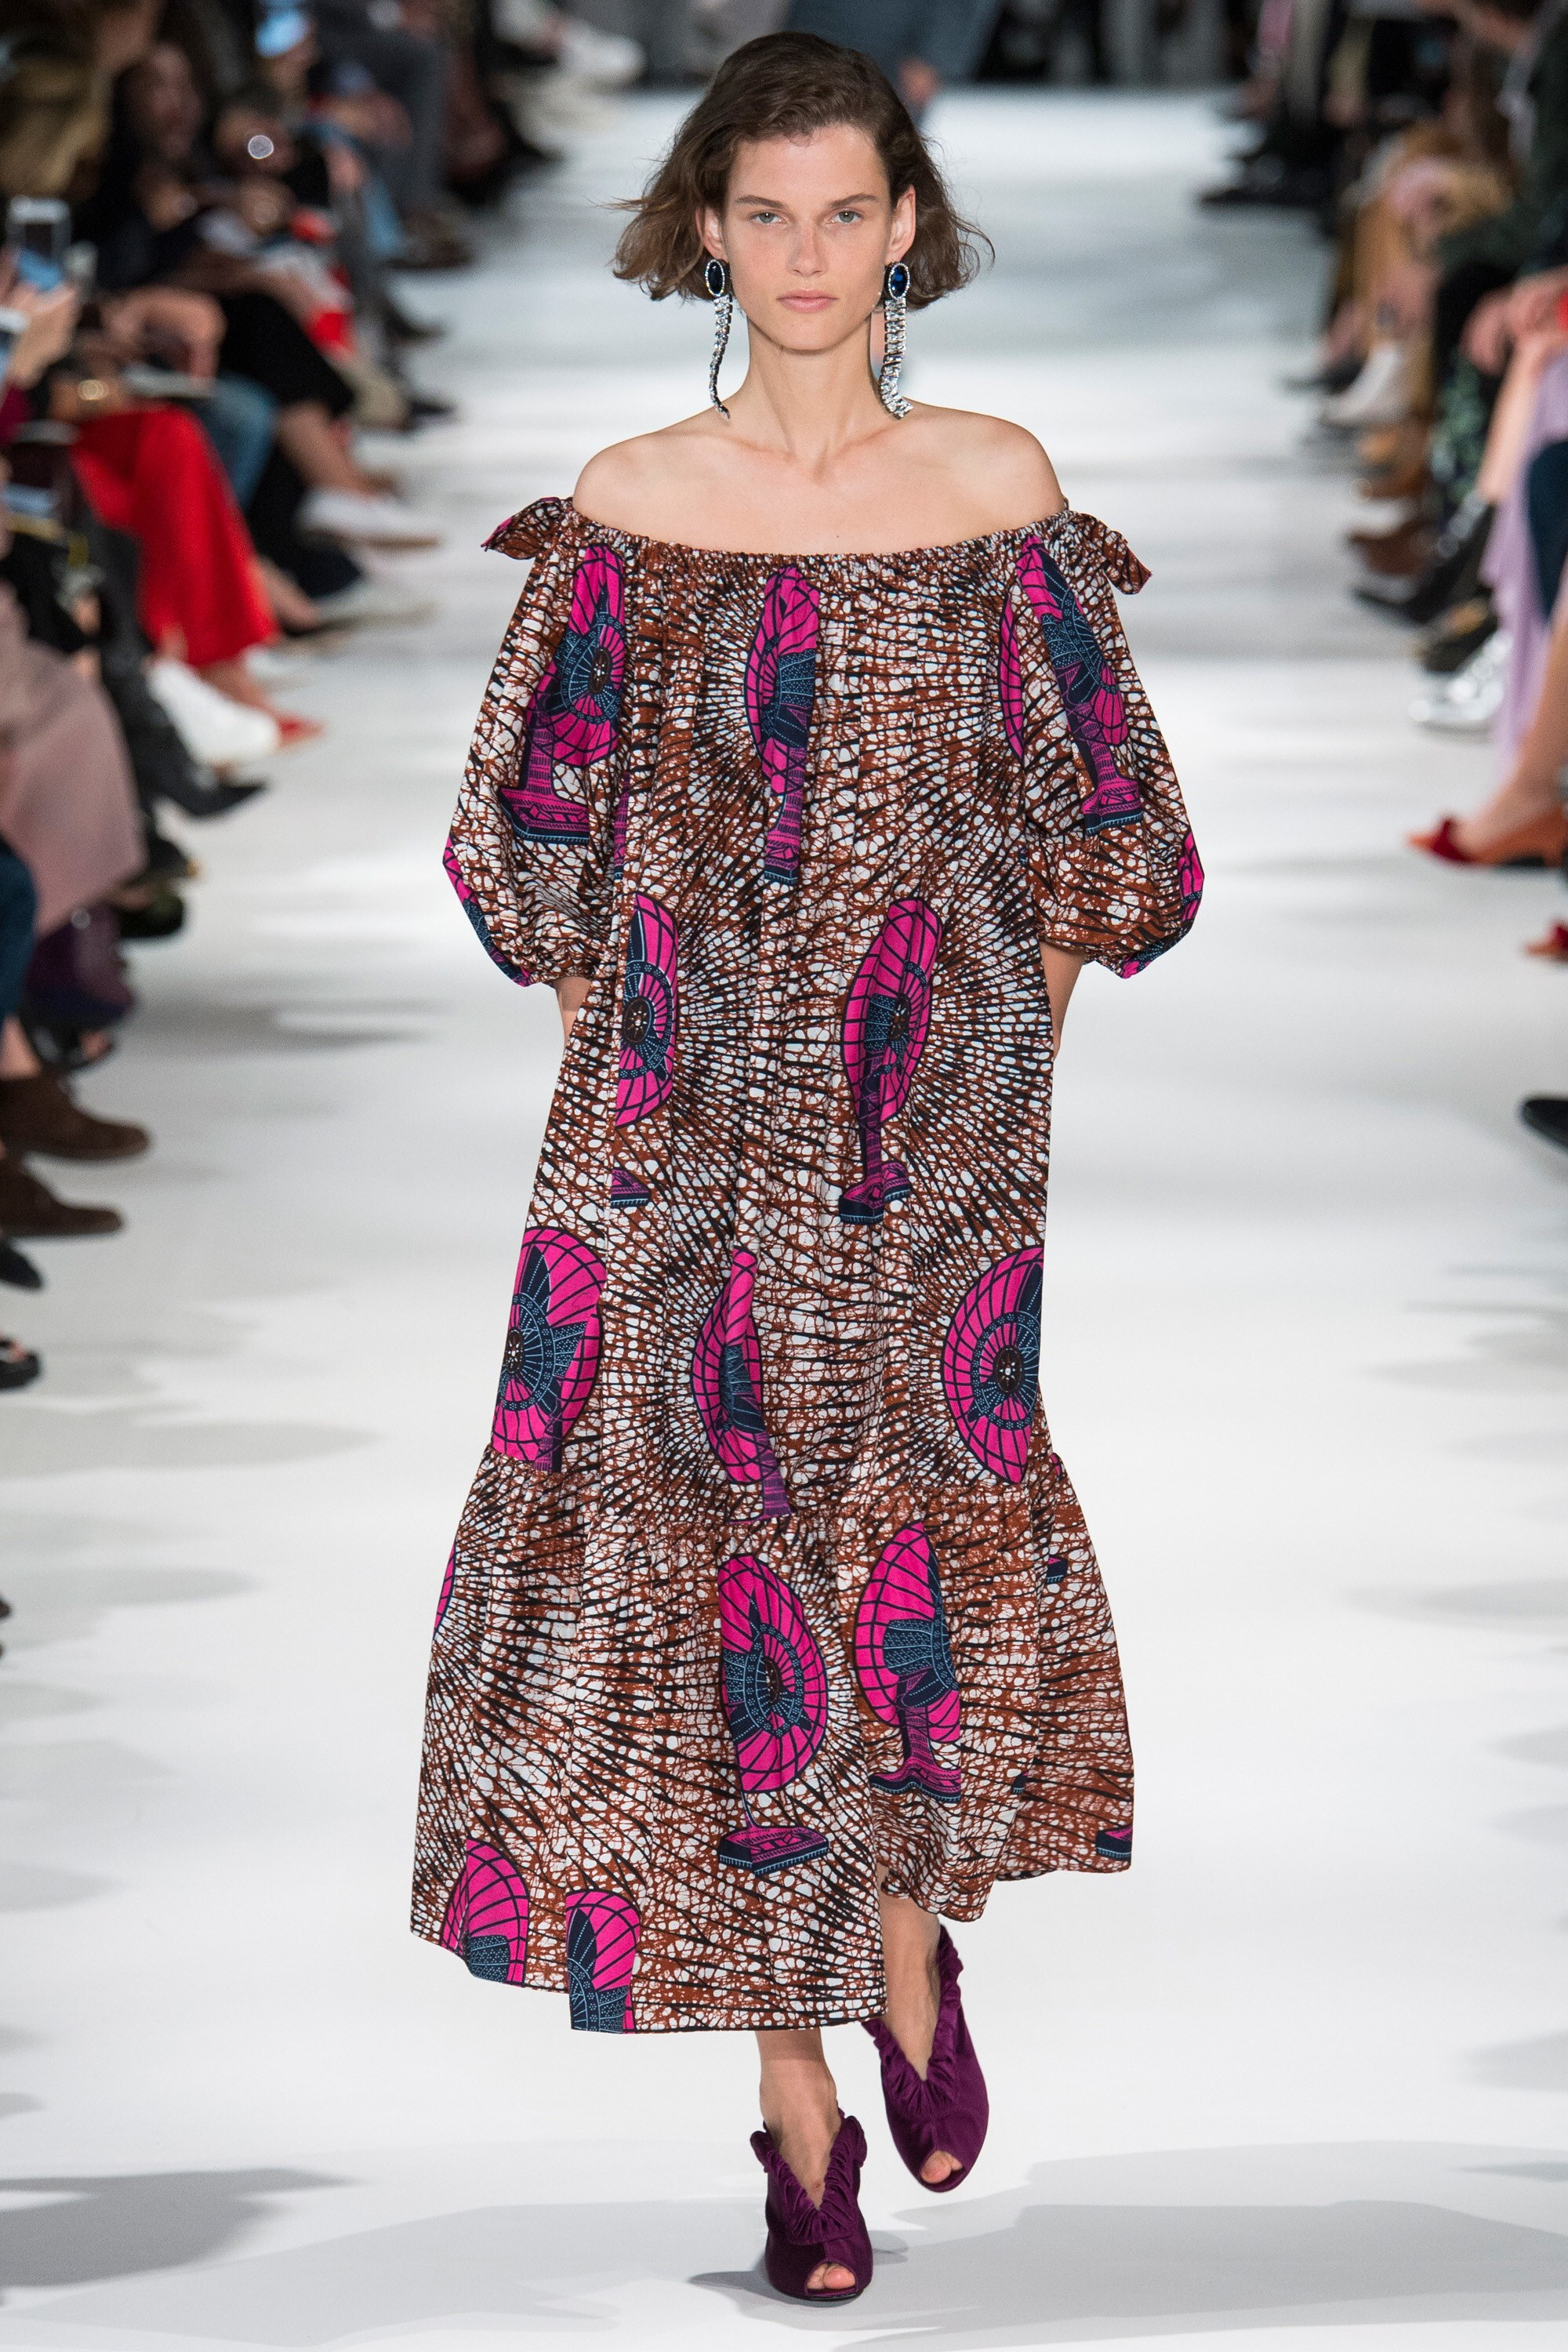 """FUNCTIONAL"" African Print Spotted During Stella McCartney SS18 Collection"